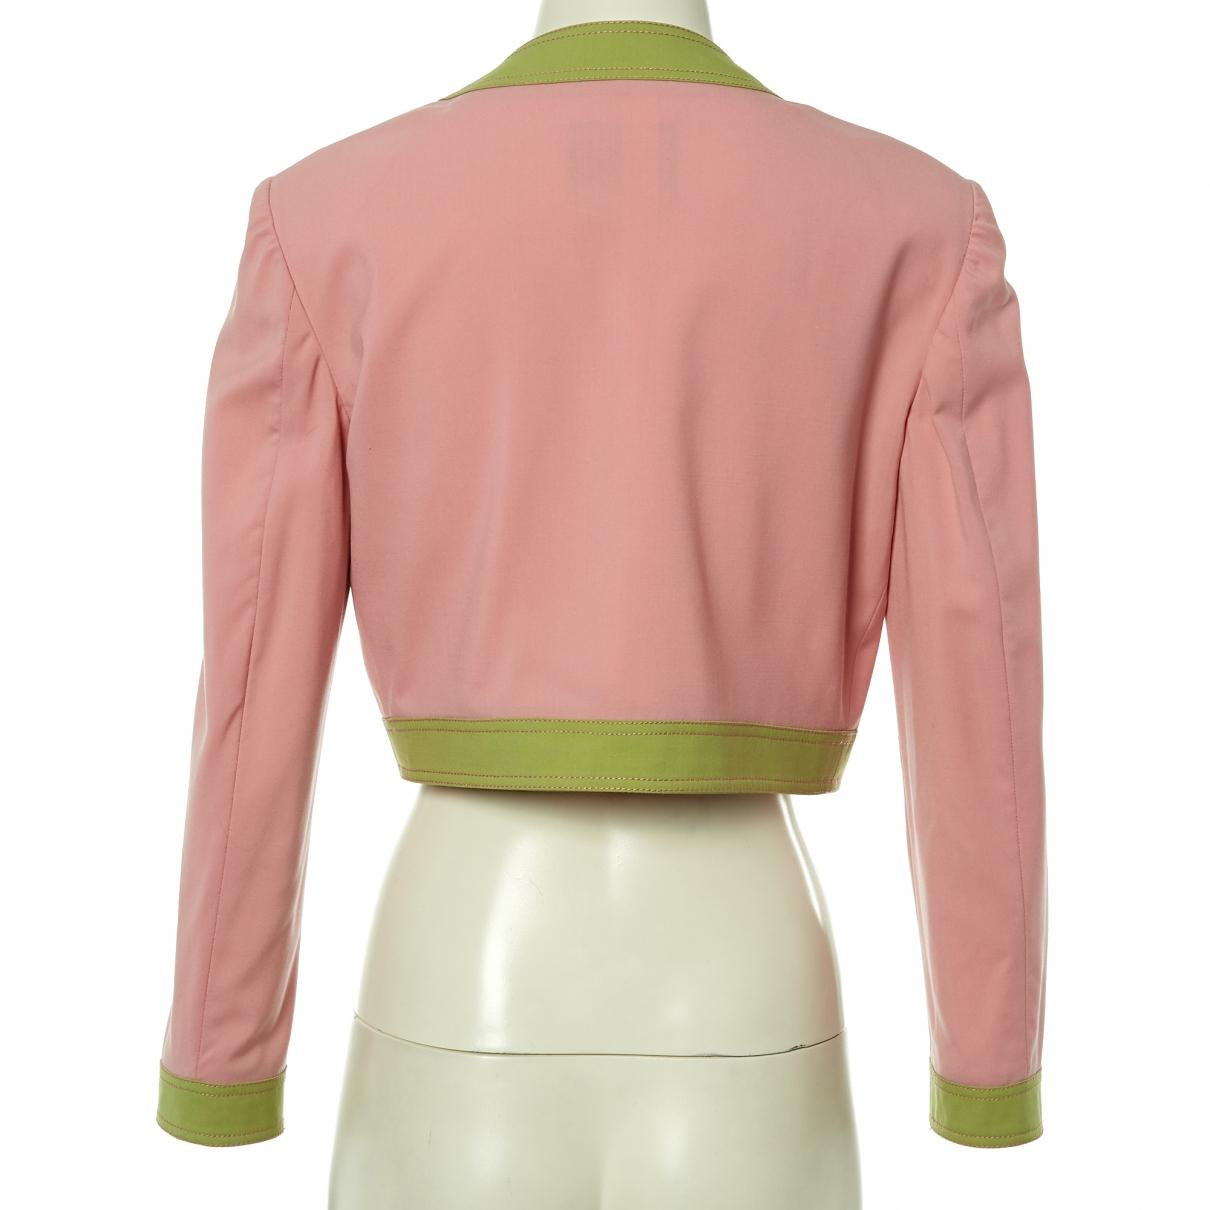 2fd1f73c3 Moschino Pink Wool Jacket in Pink - Lyst